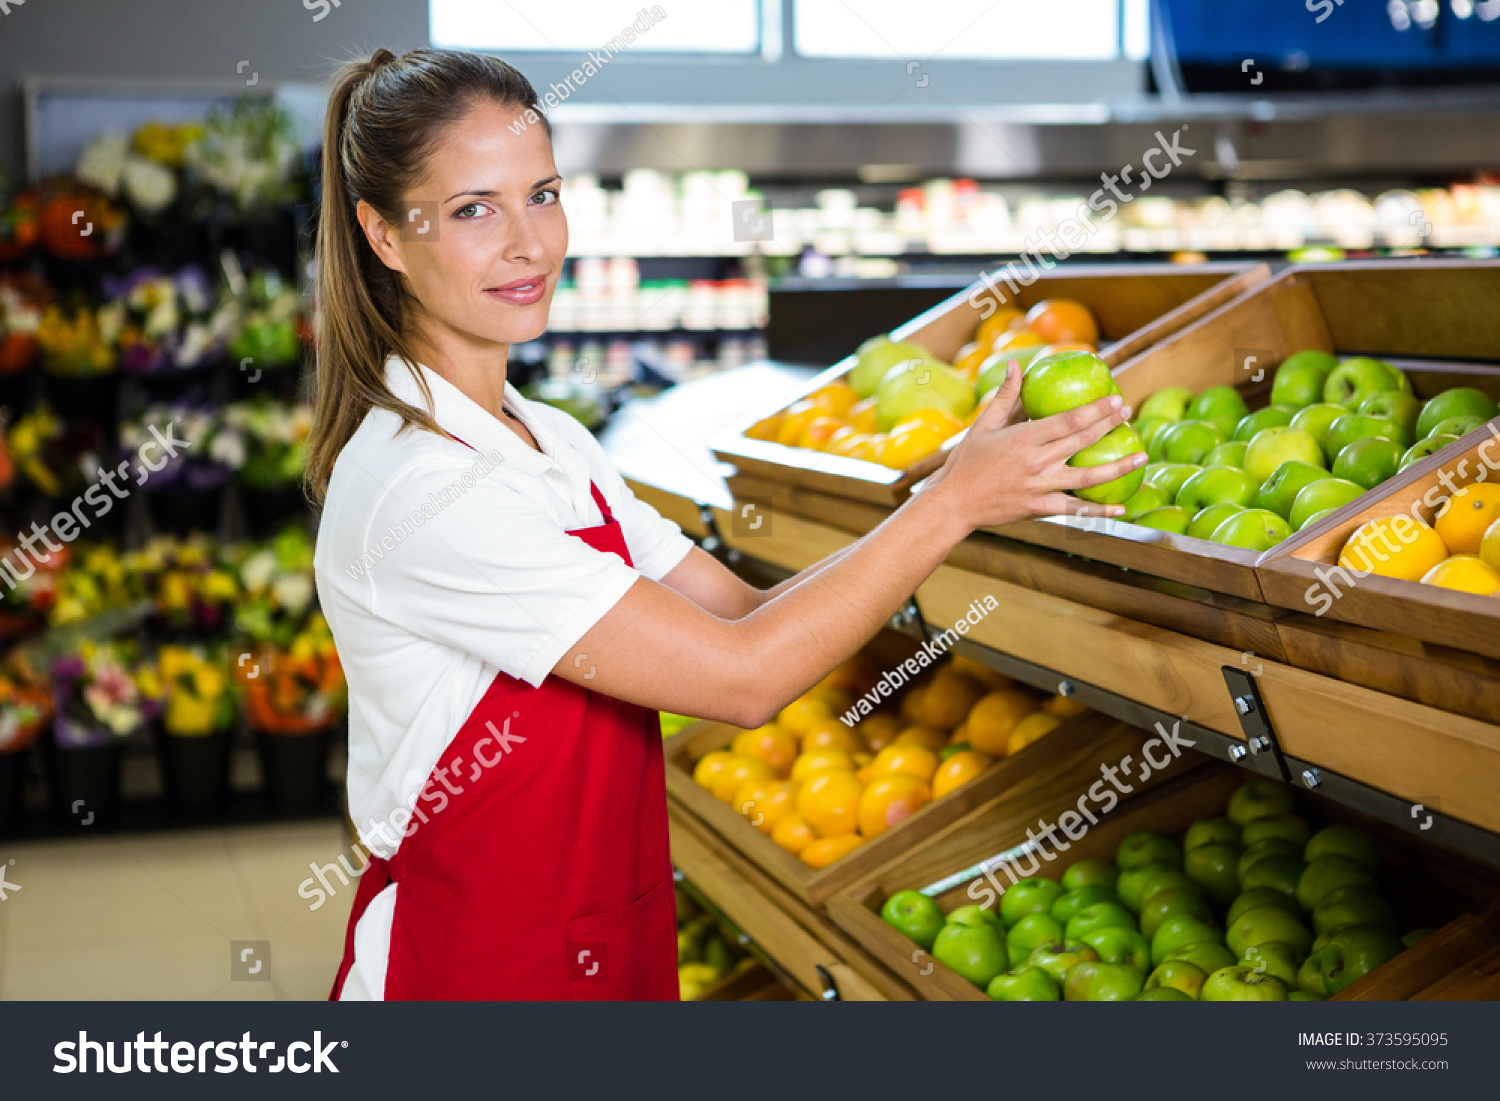 portrait female worker taking fruit grocery stock photo  portrait of female worker taking fruit in grocery store